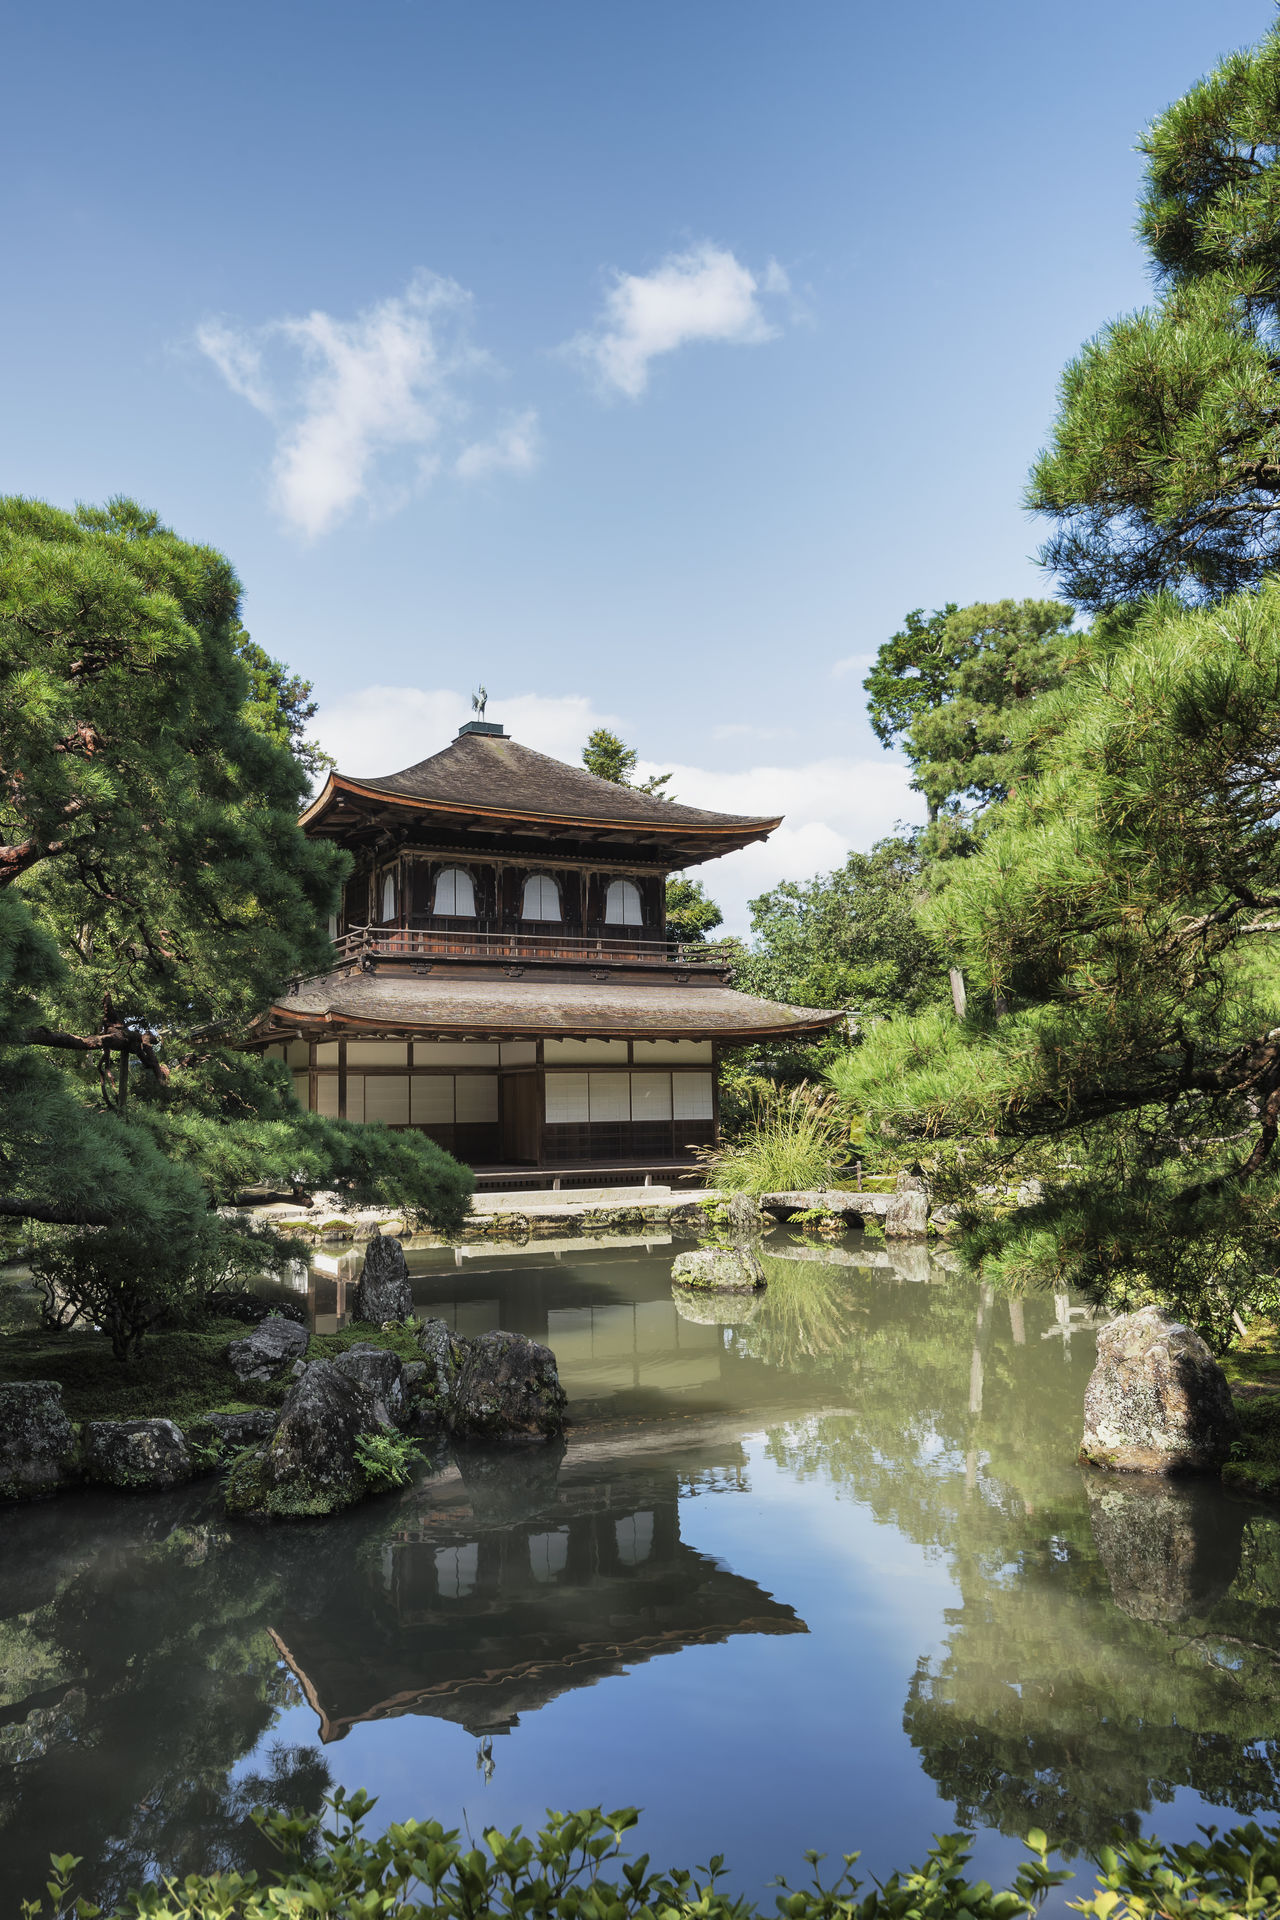 Ginkaku-ji Temple main pavilion, Kyoto, Japan Ancient City Architecture Blue Cultures Day Famous Place Ginkakuji Historical Building Japan Japanese  Kyoto Lake No People Outdoors Place Of Worship Reflection Reflection Lake Sky Temple Tranquility Travel Travel Destinations Tree Water Zen Garden